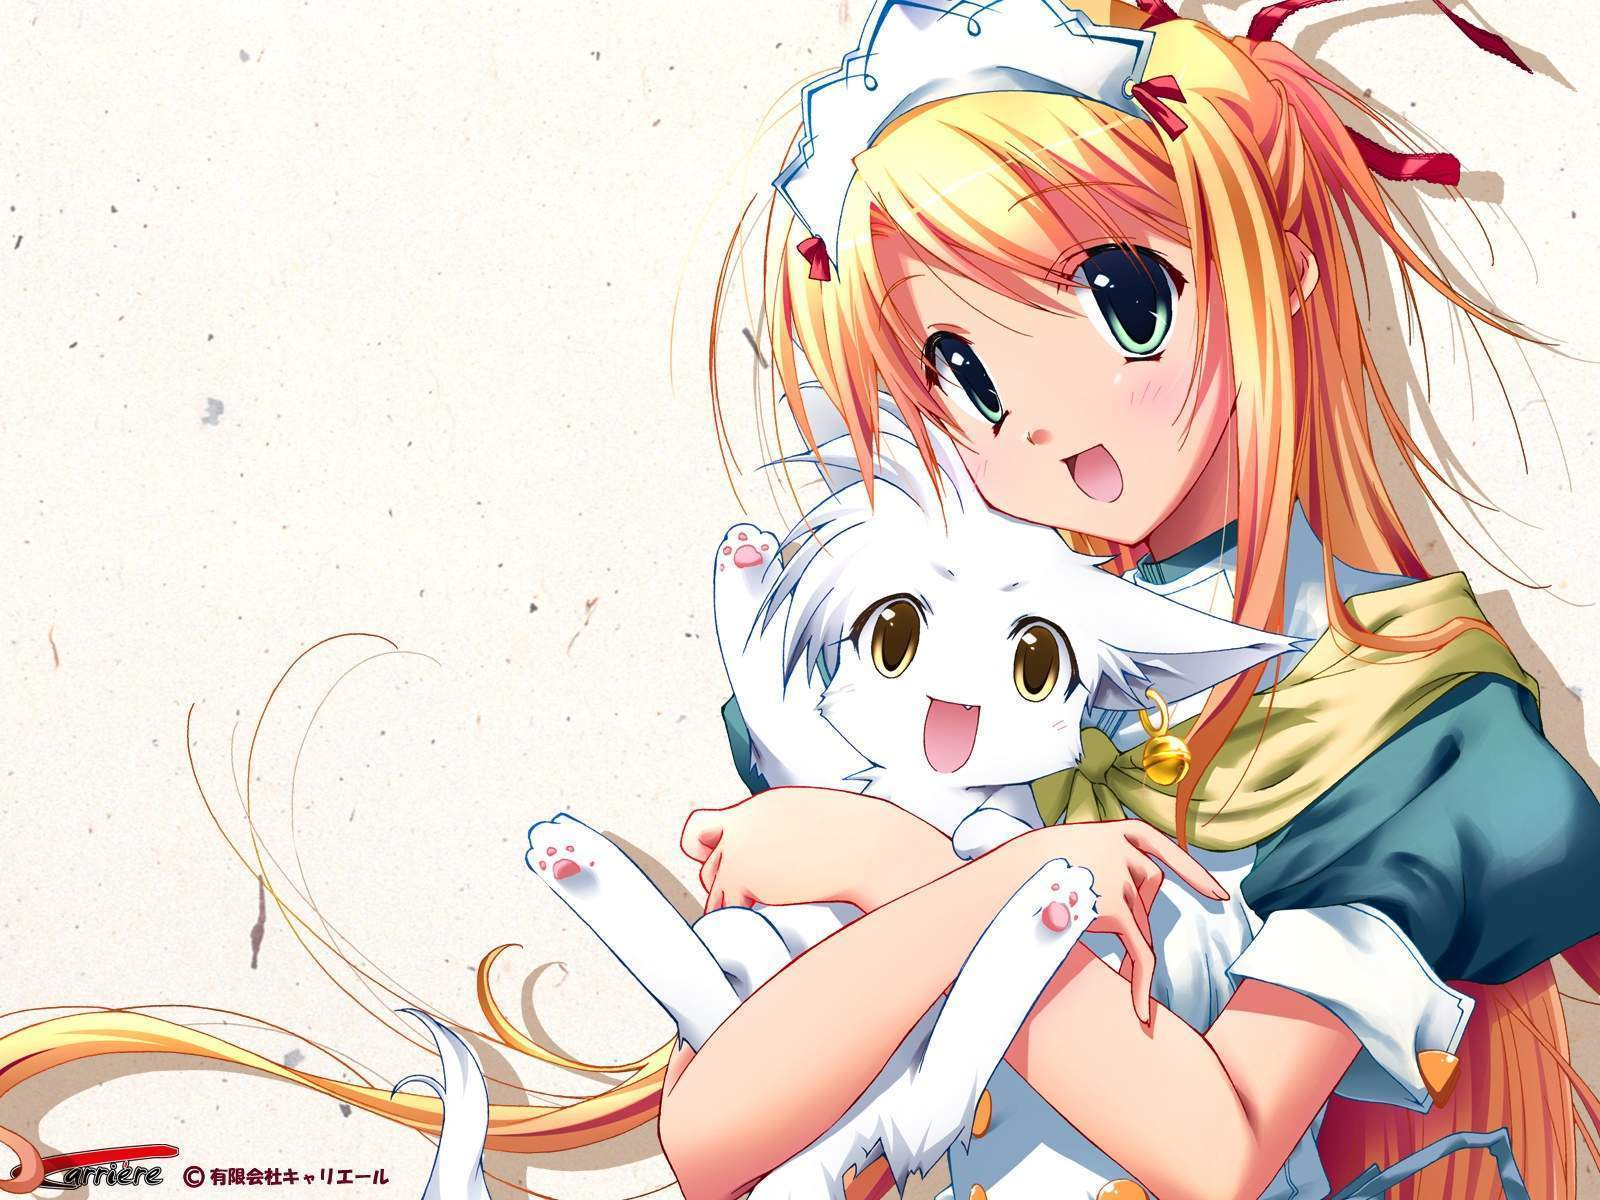 Anime girl with cat kitten star light wallpaper - Anime cat wallpaper ...